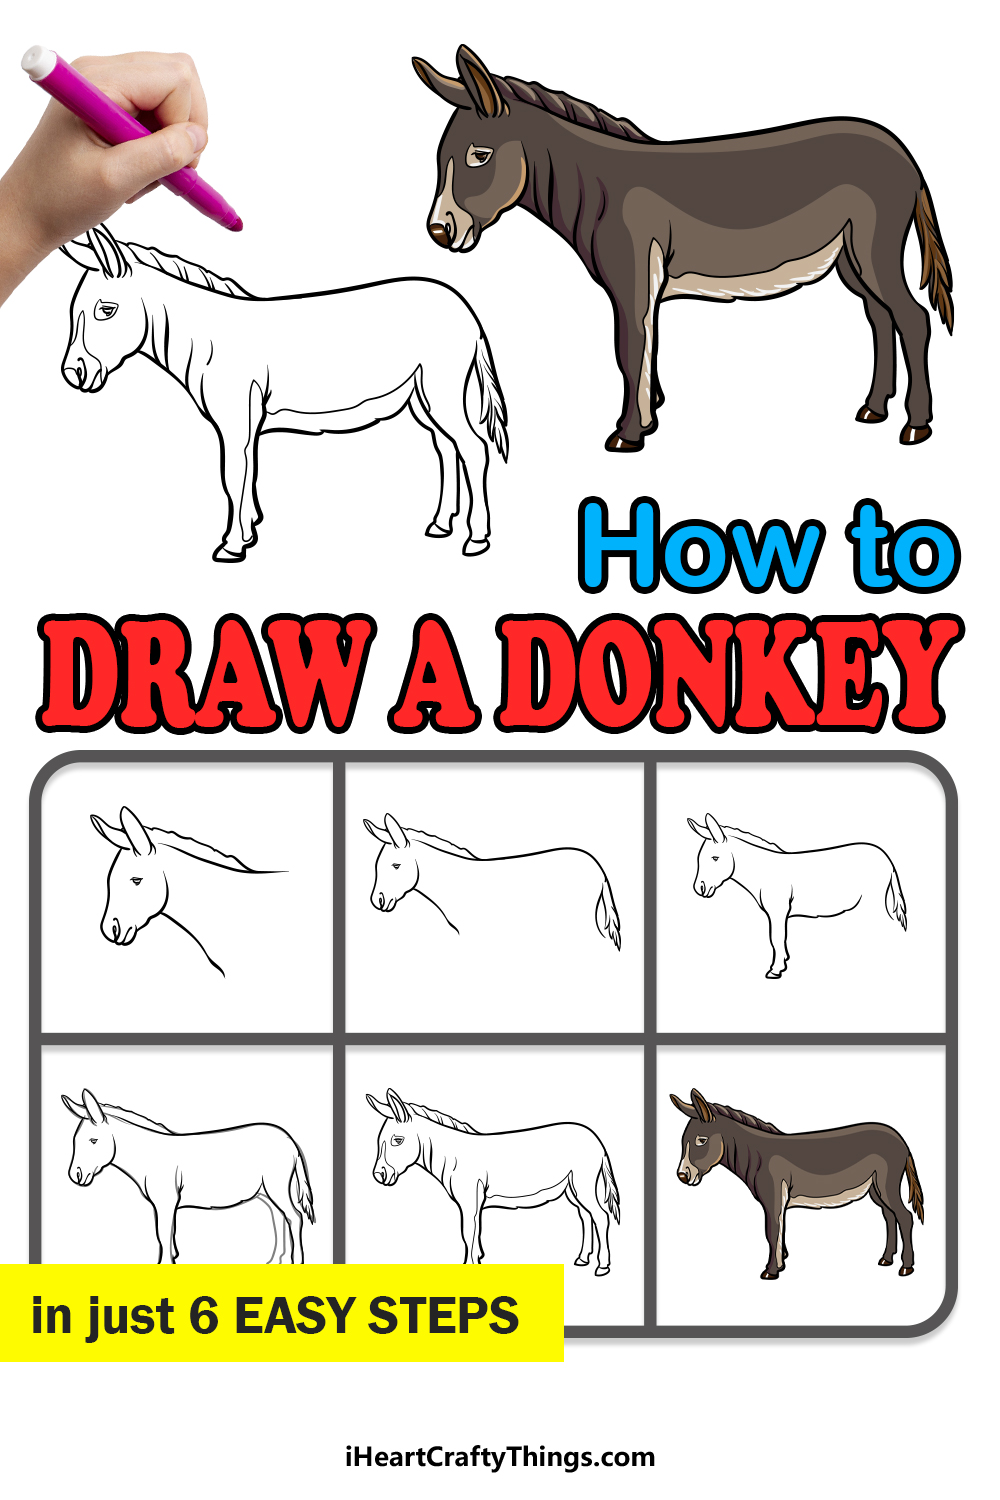 how to draw a donkey in 6 easy steps